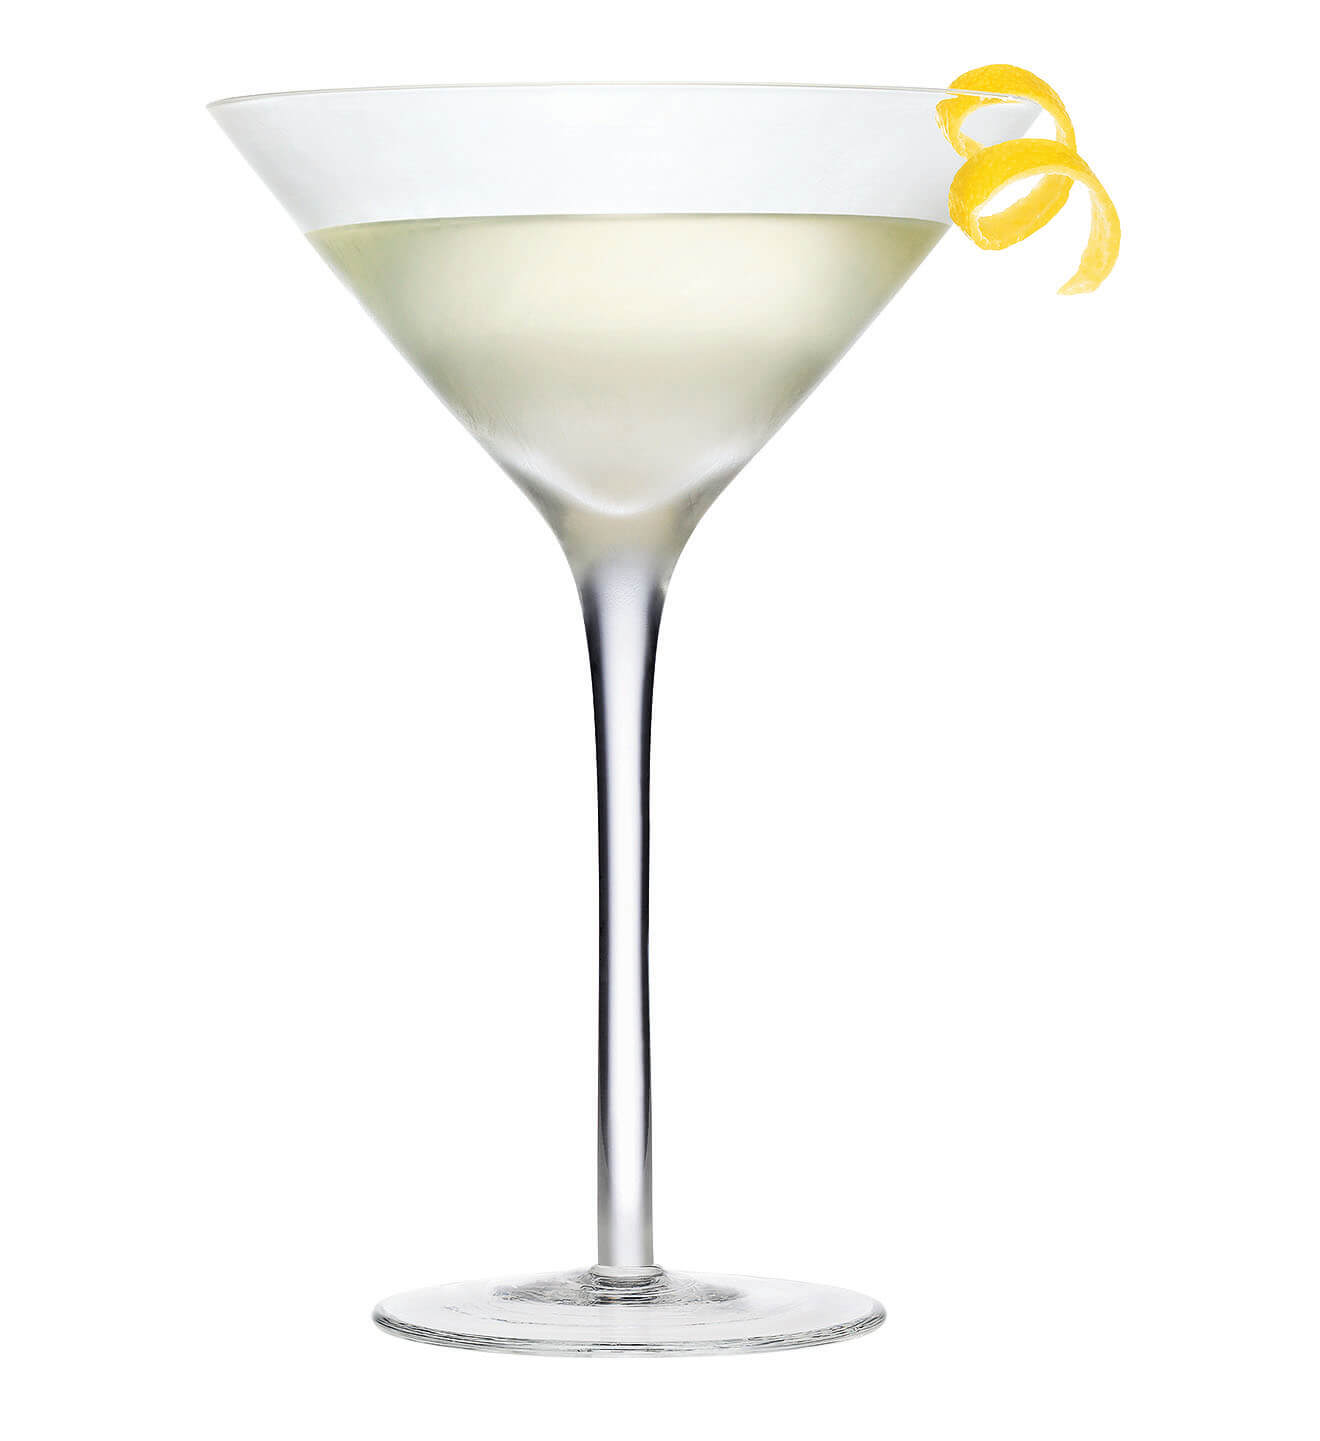 Martini and Rossi Classic Martini